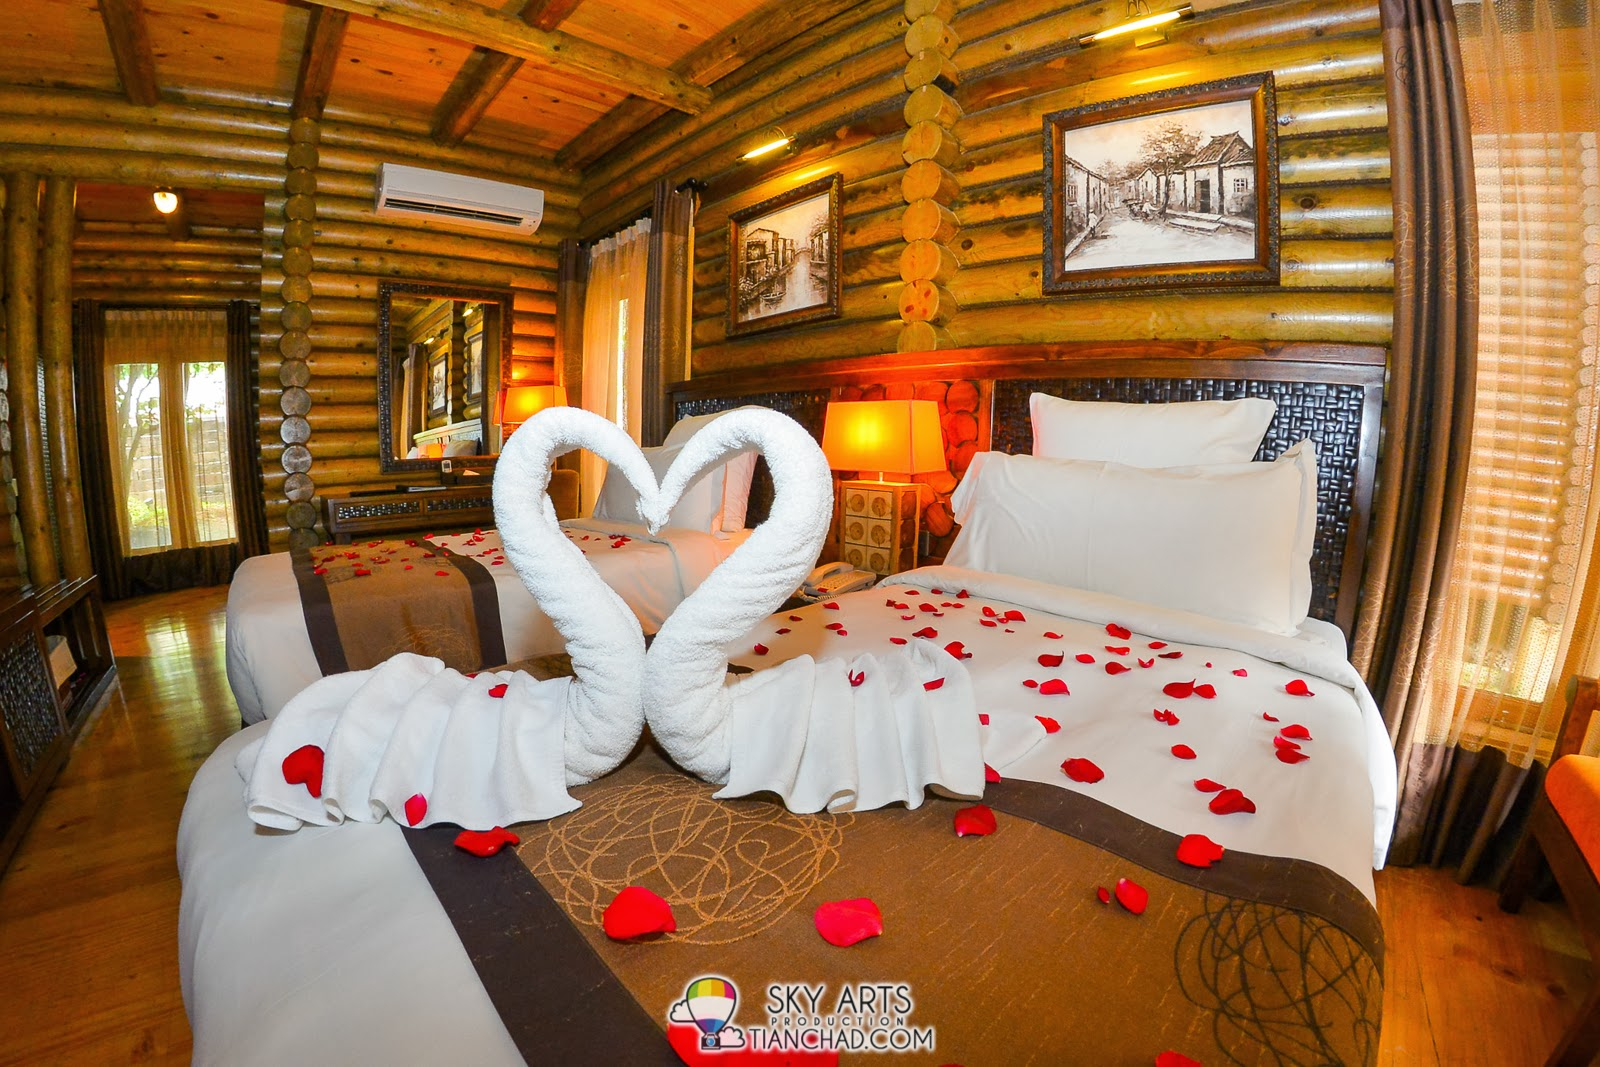 Room decorated with hand folded swan towels and rose petals on the bed